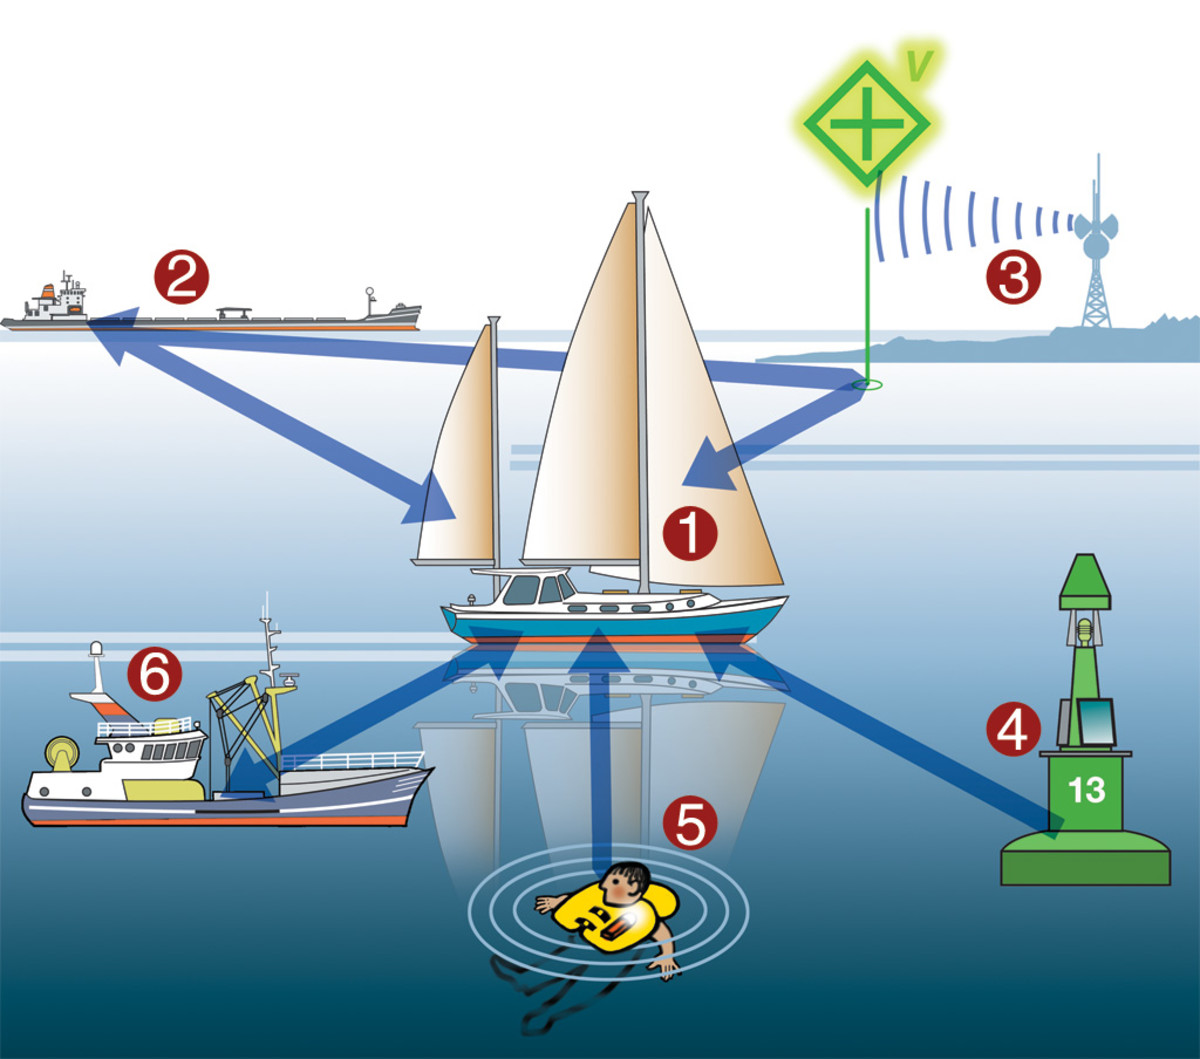 Here's how AIS impacts the cruising sailor: the cruiser's Class B AIS transceiver (1) is exchanging information with a freighter (2) receiving signals from a land-based station serving as a virtual AtoN (3) receiving a signal from a channel marker (4) displaying the distance and bearing to an MOB via an AIS distress beacon (5) and calculating if it is on a collision course with a fishing boat (6)